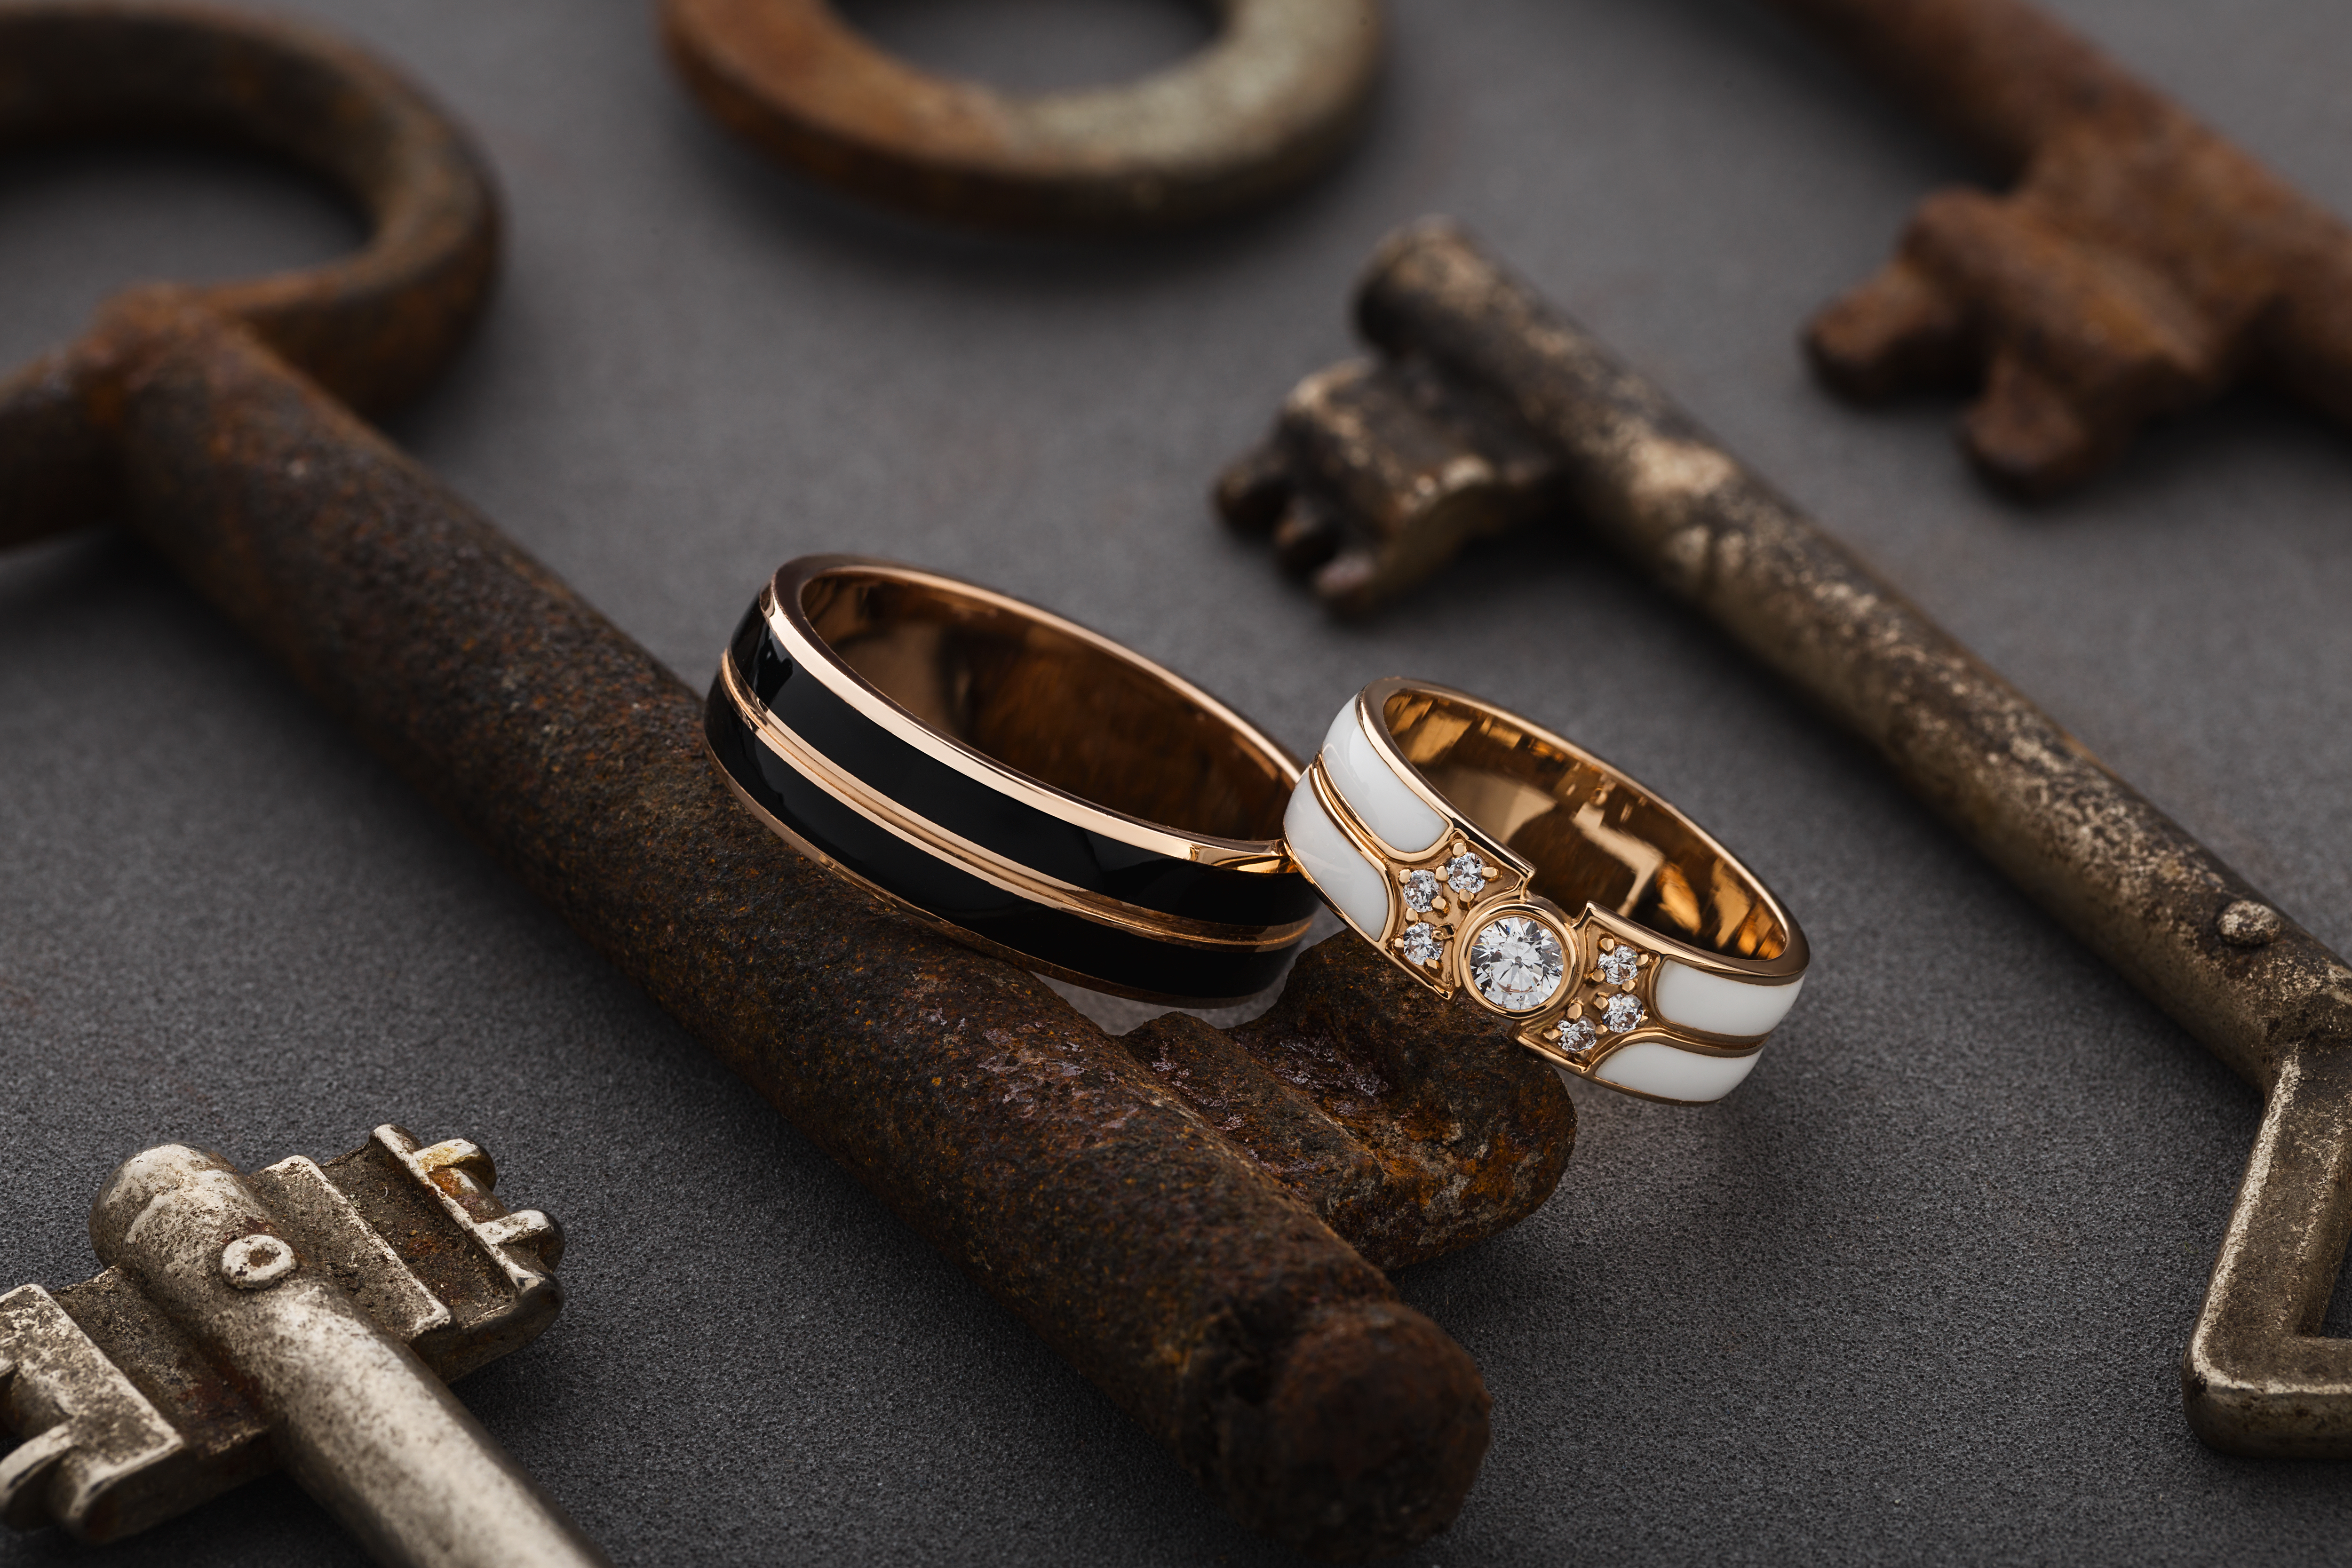 wedding ring on top of rusted keys on a table